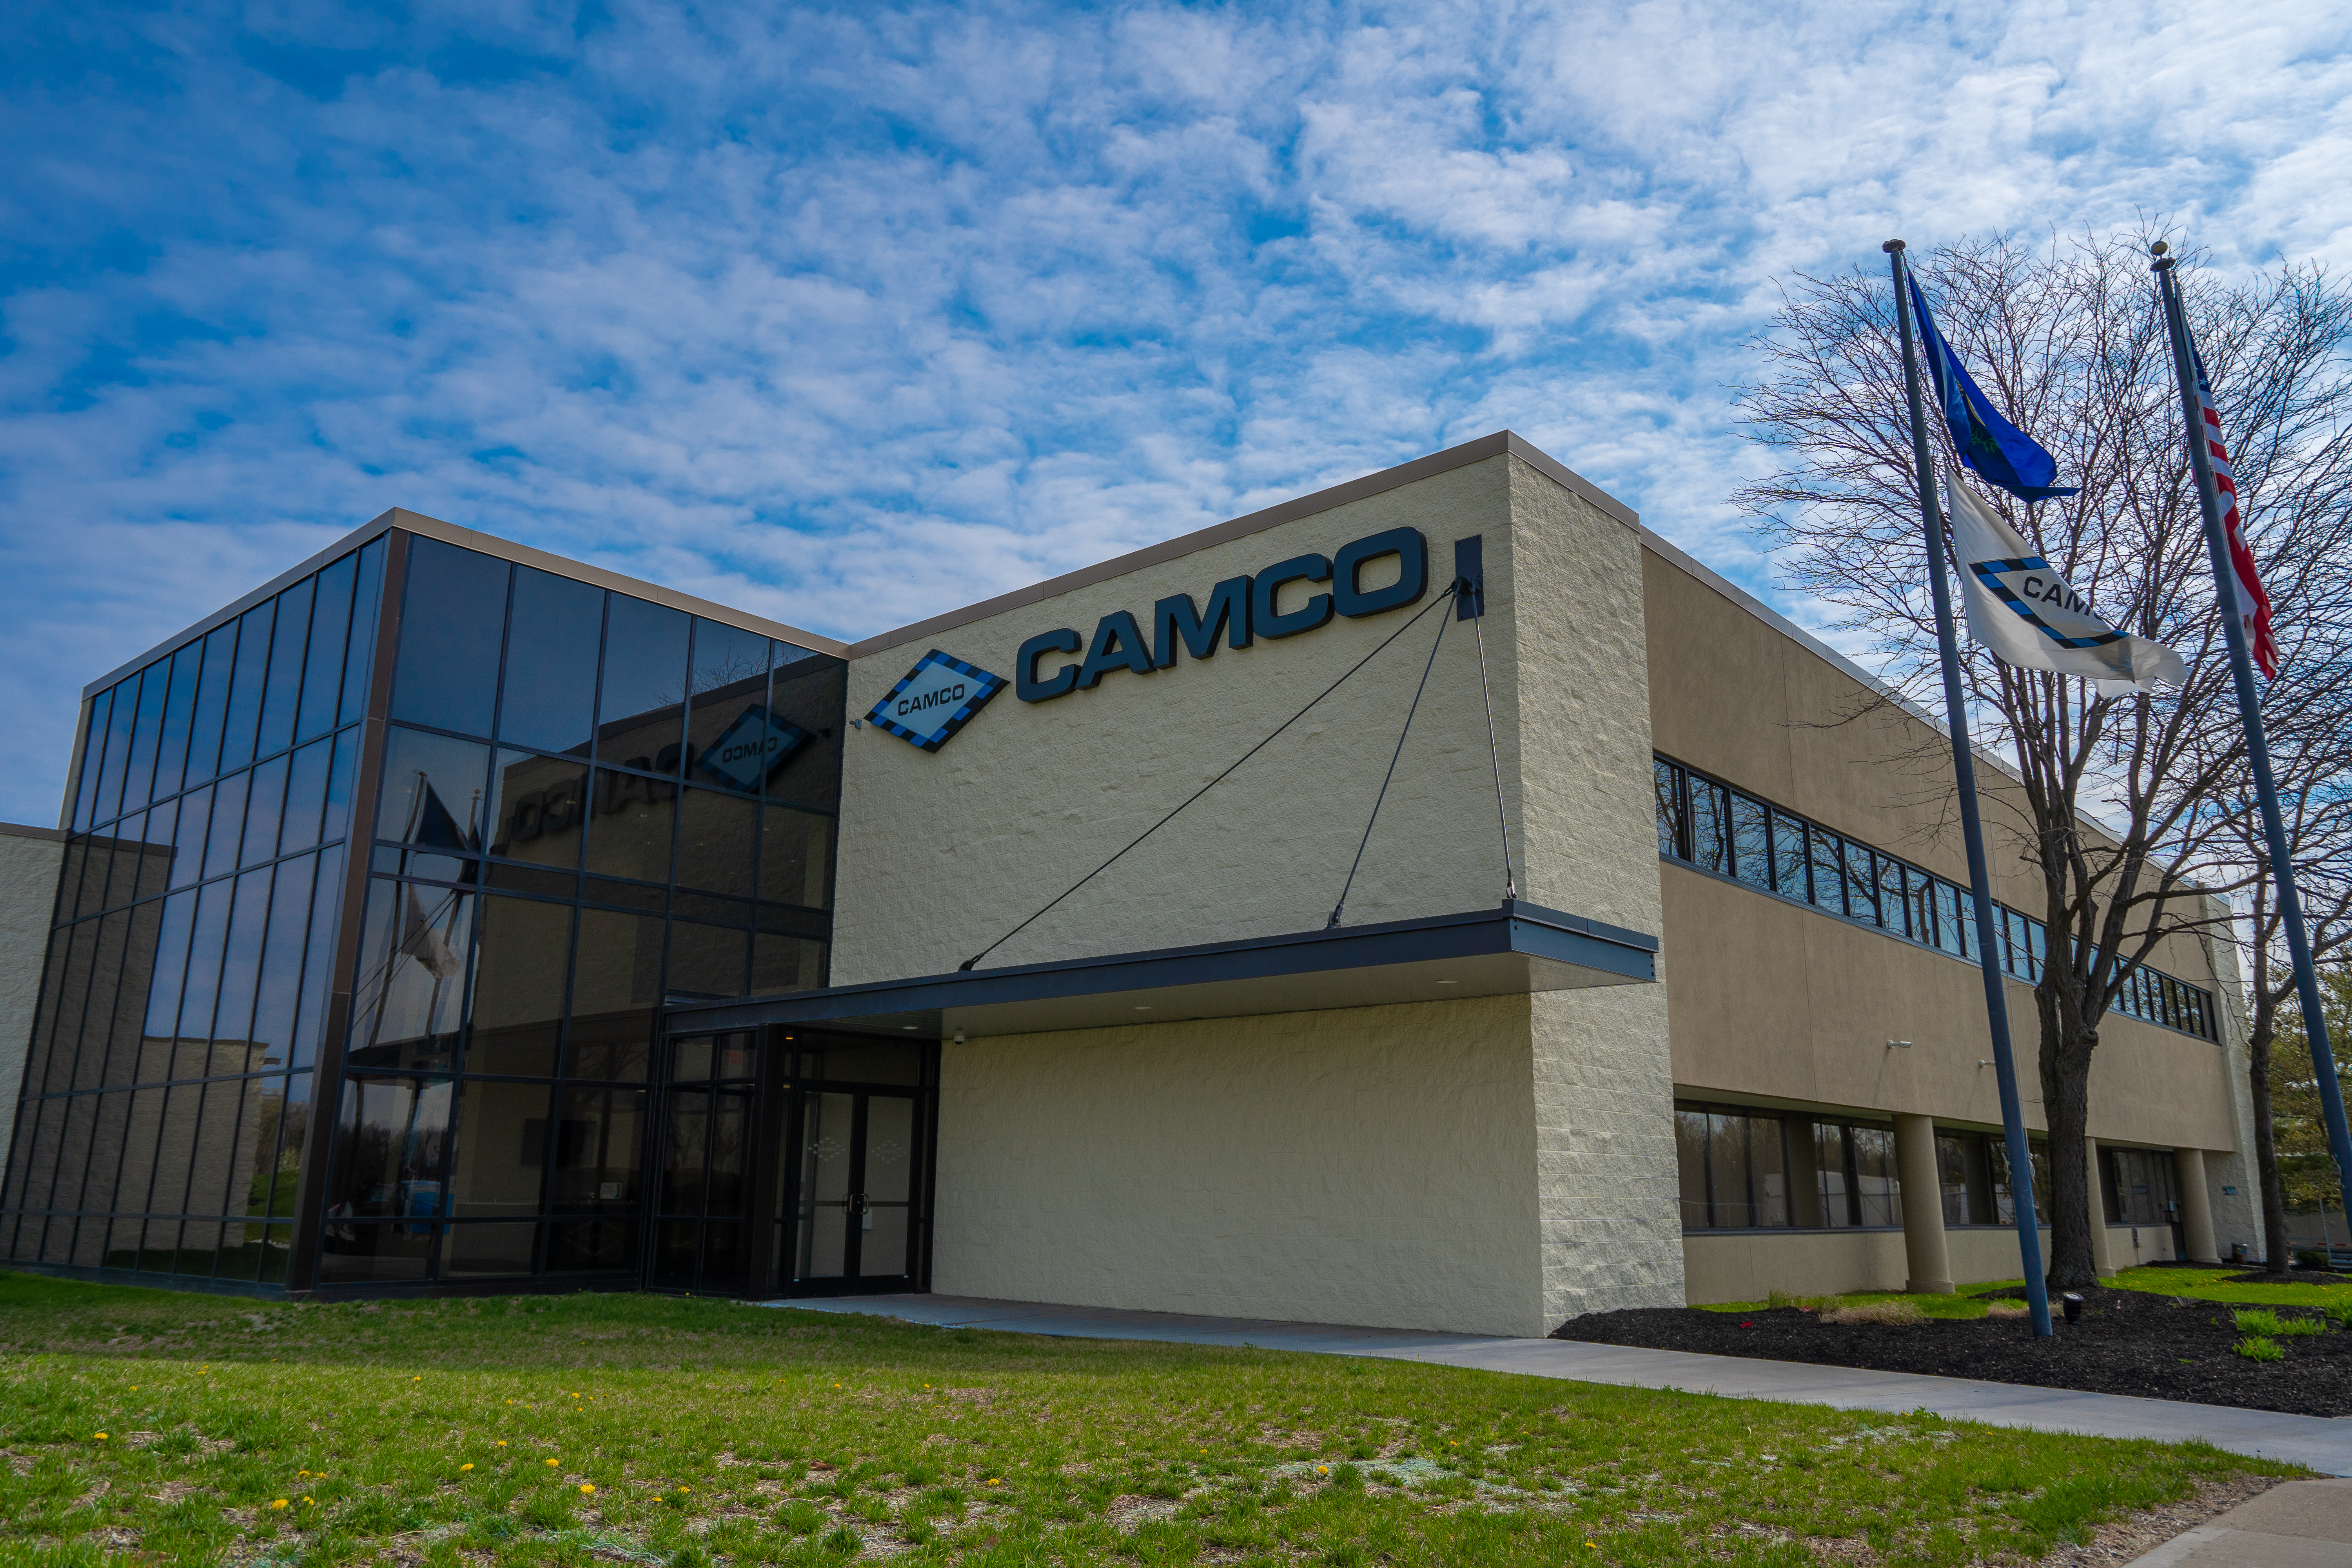 camco main office